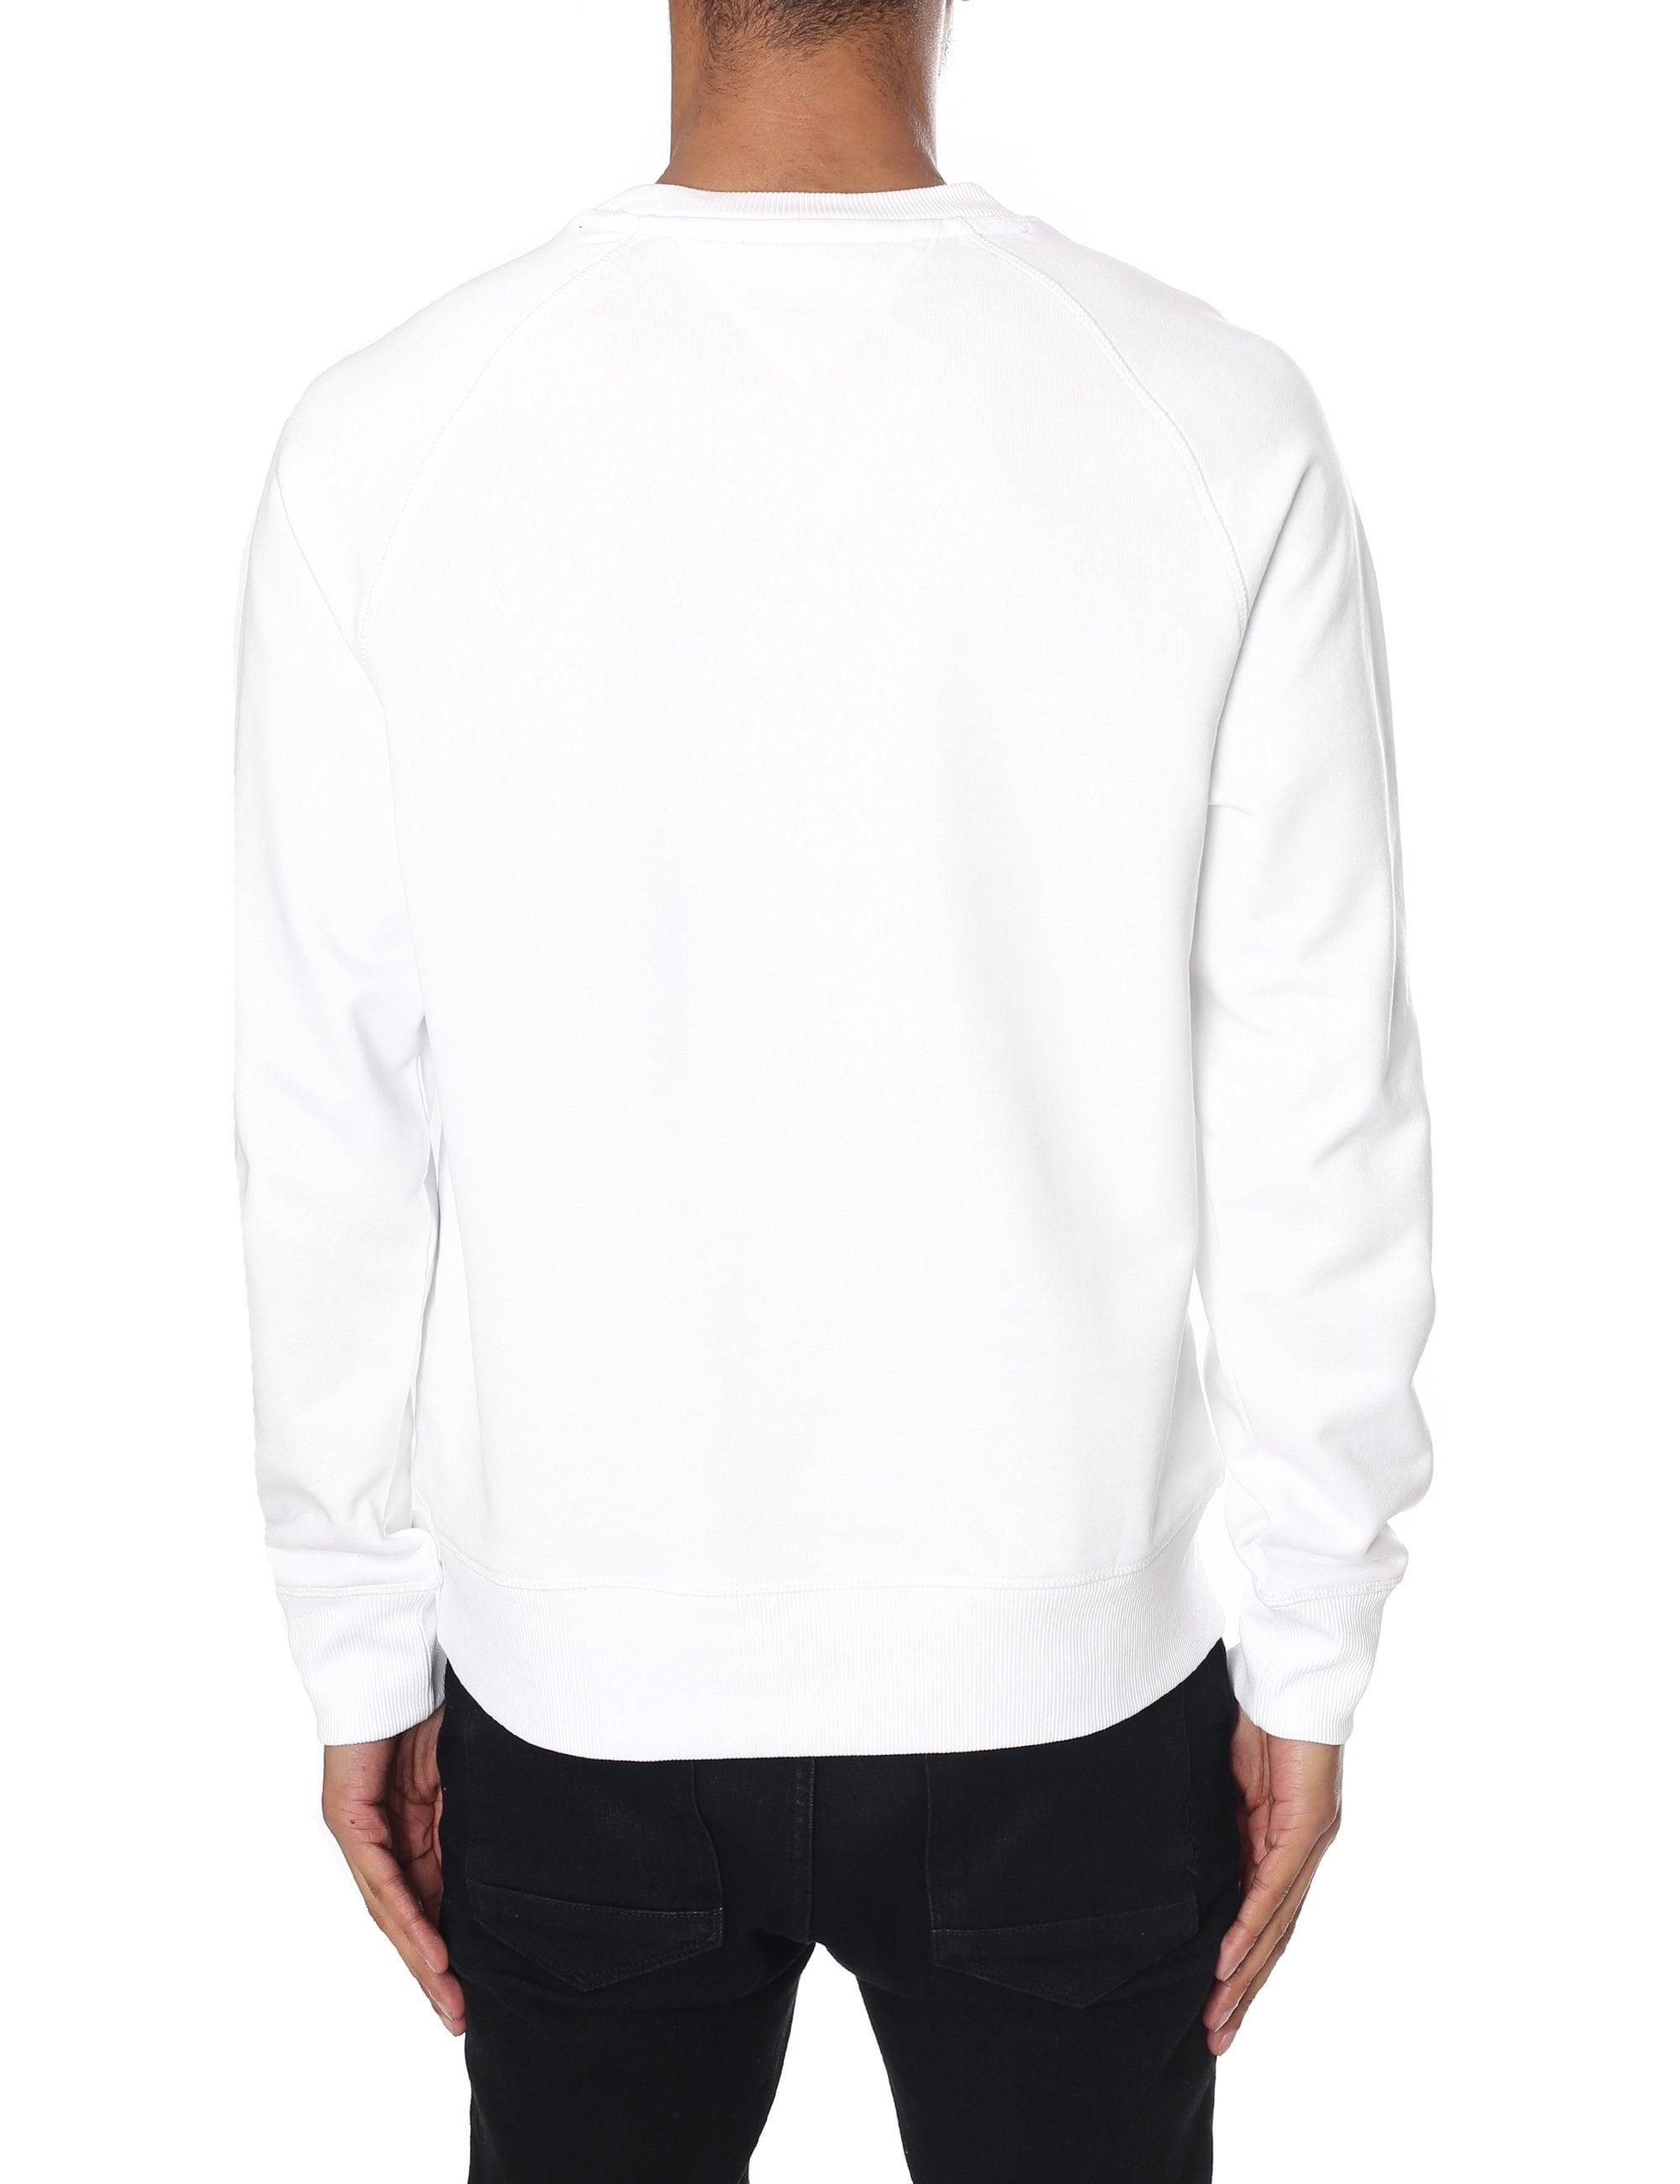 8dc55f728 Tommy Hilfiger New York Logo Embroidered Sweatshirt in White for Men - Save  1% - Lyst